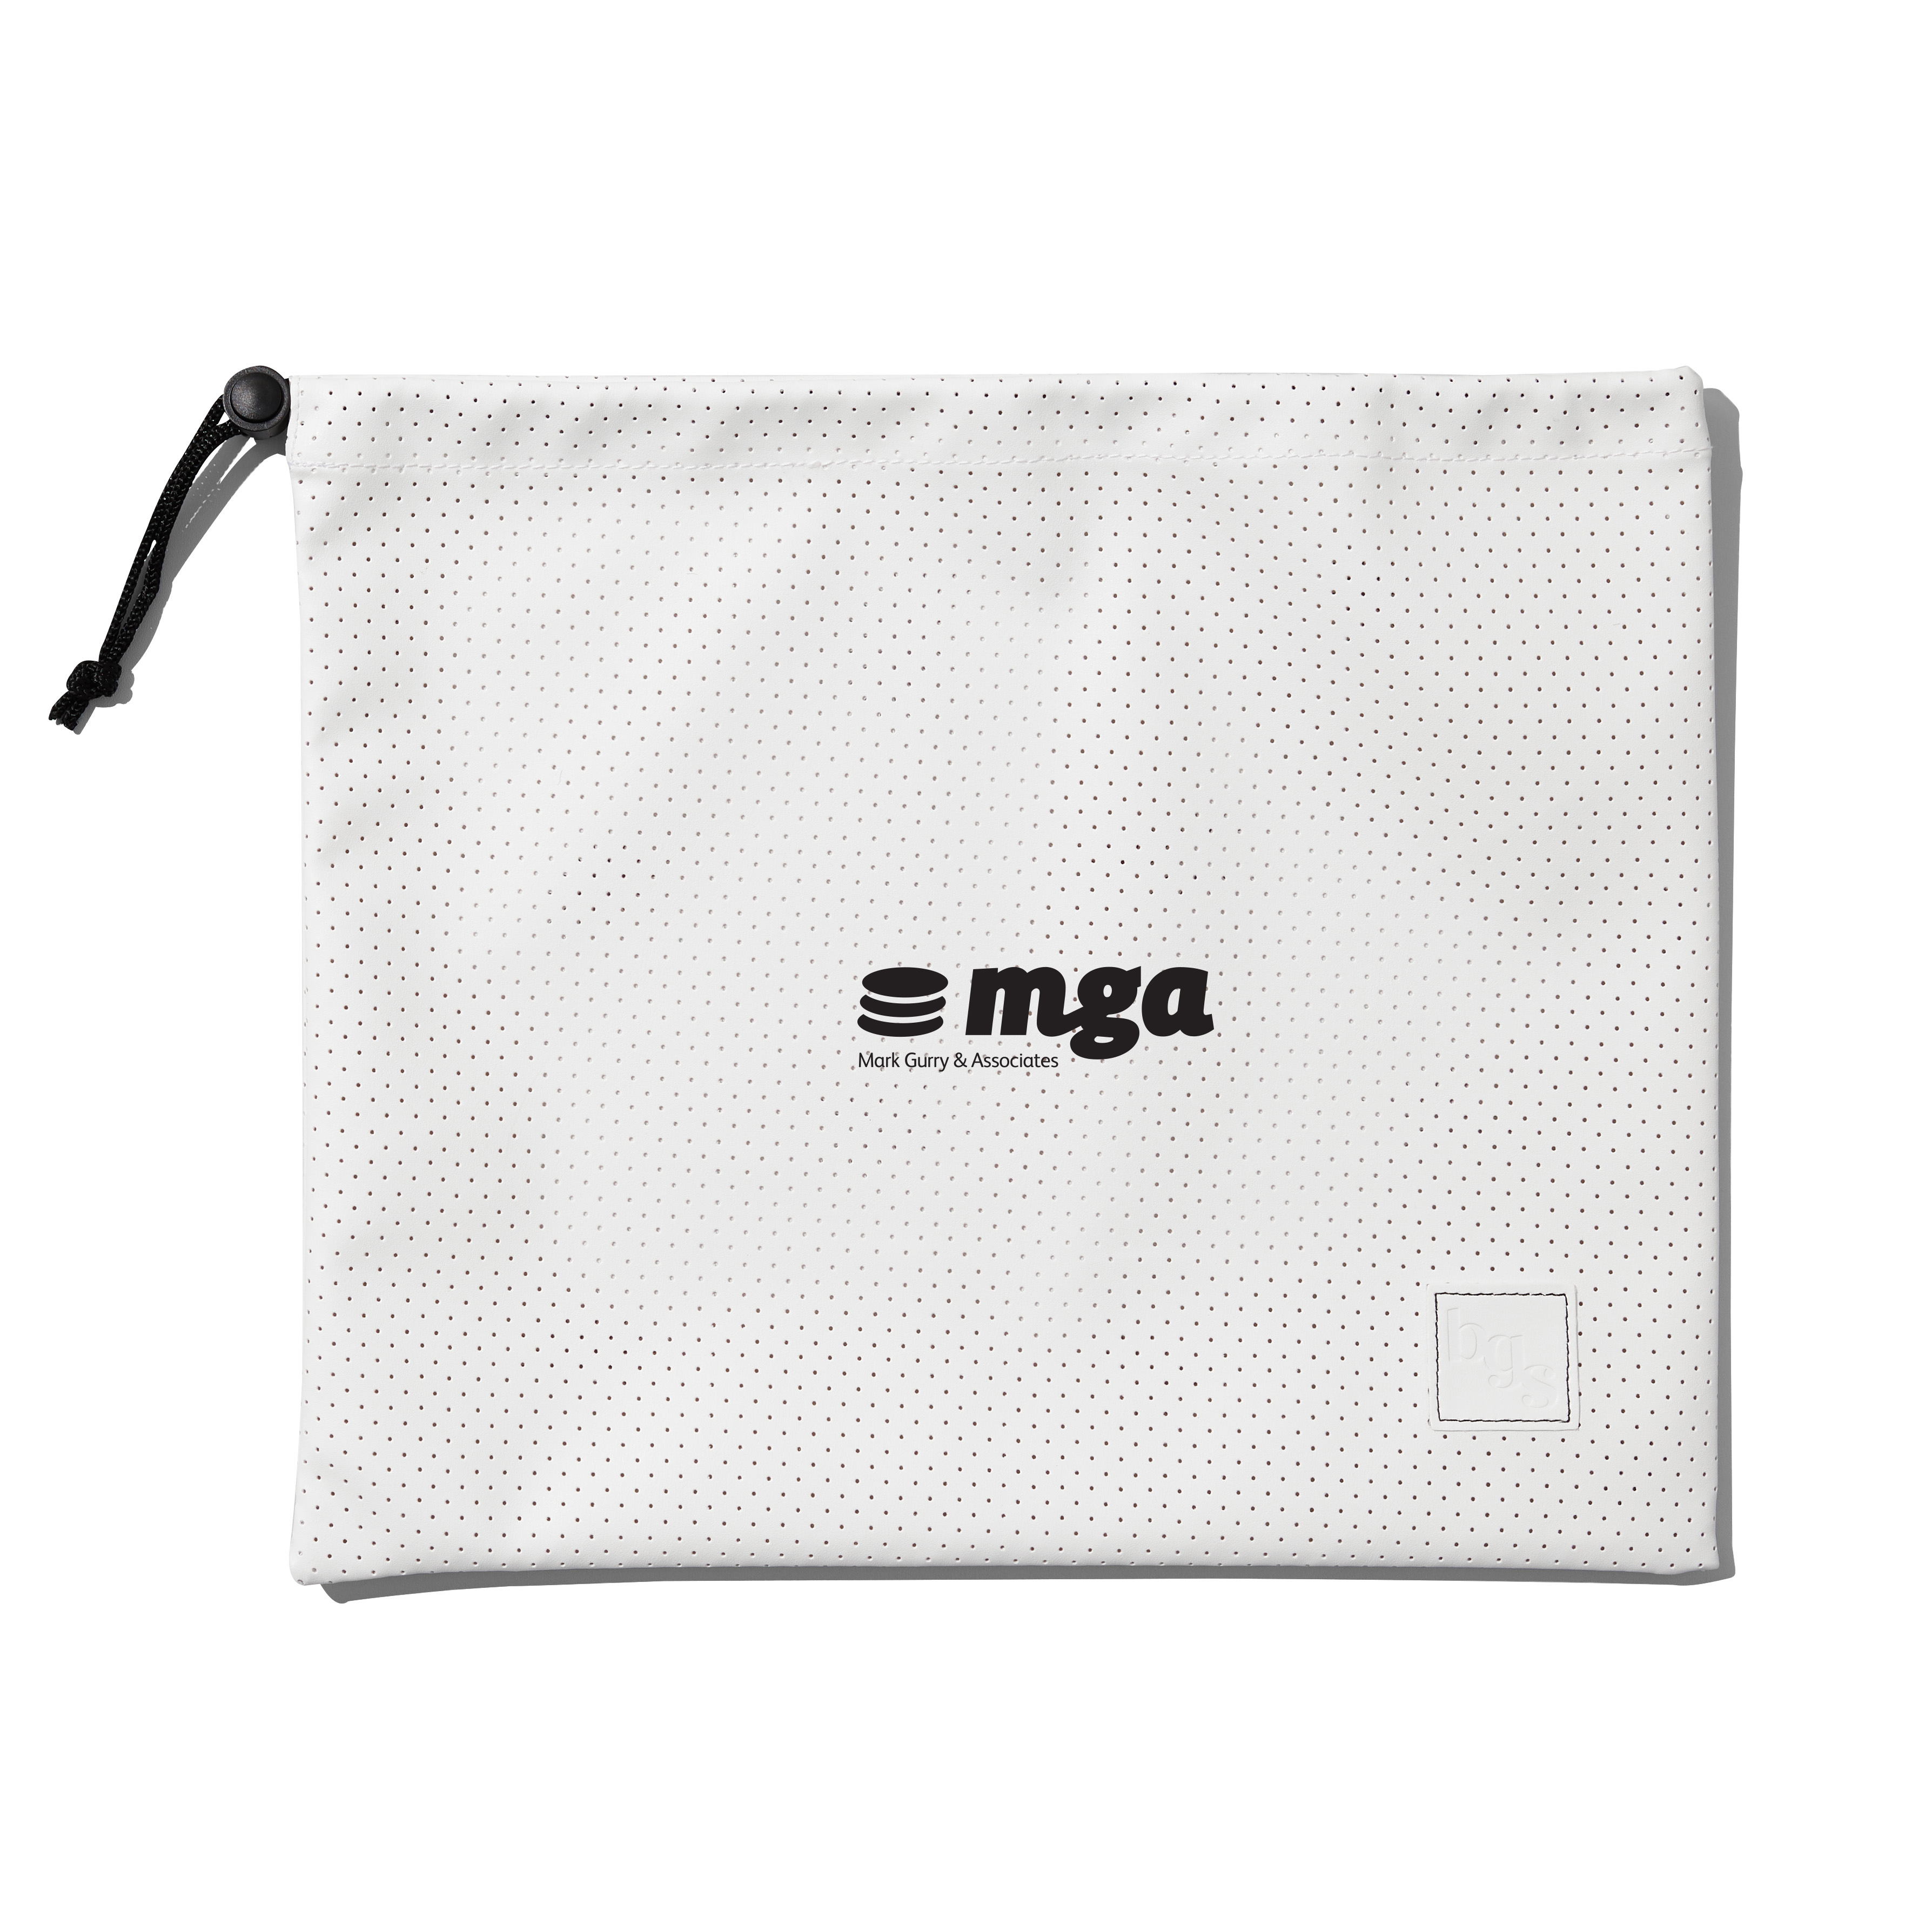 MGA branded corporate gifts